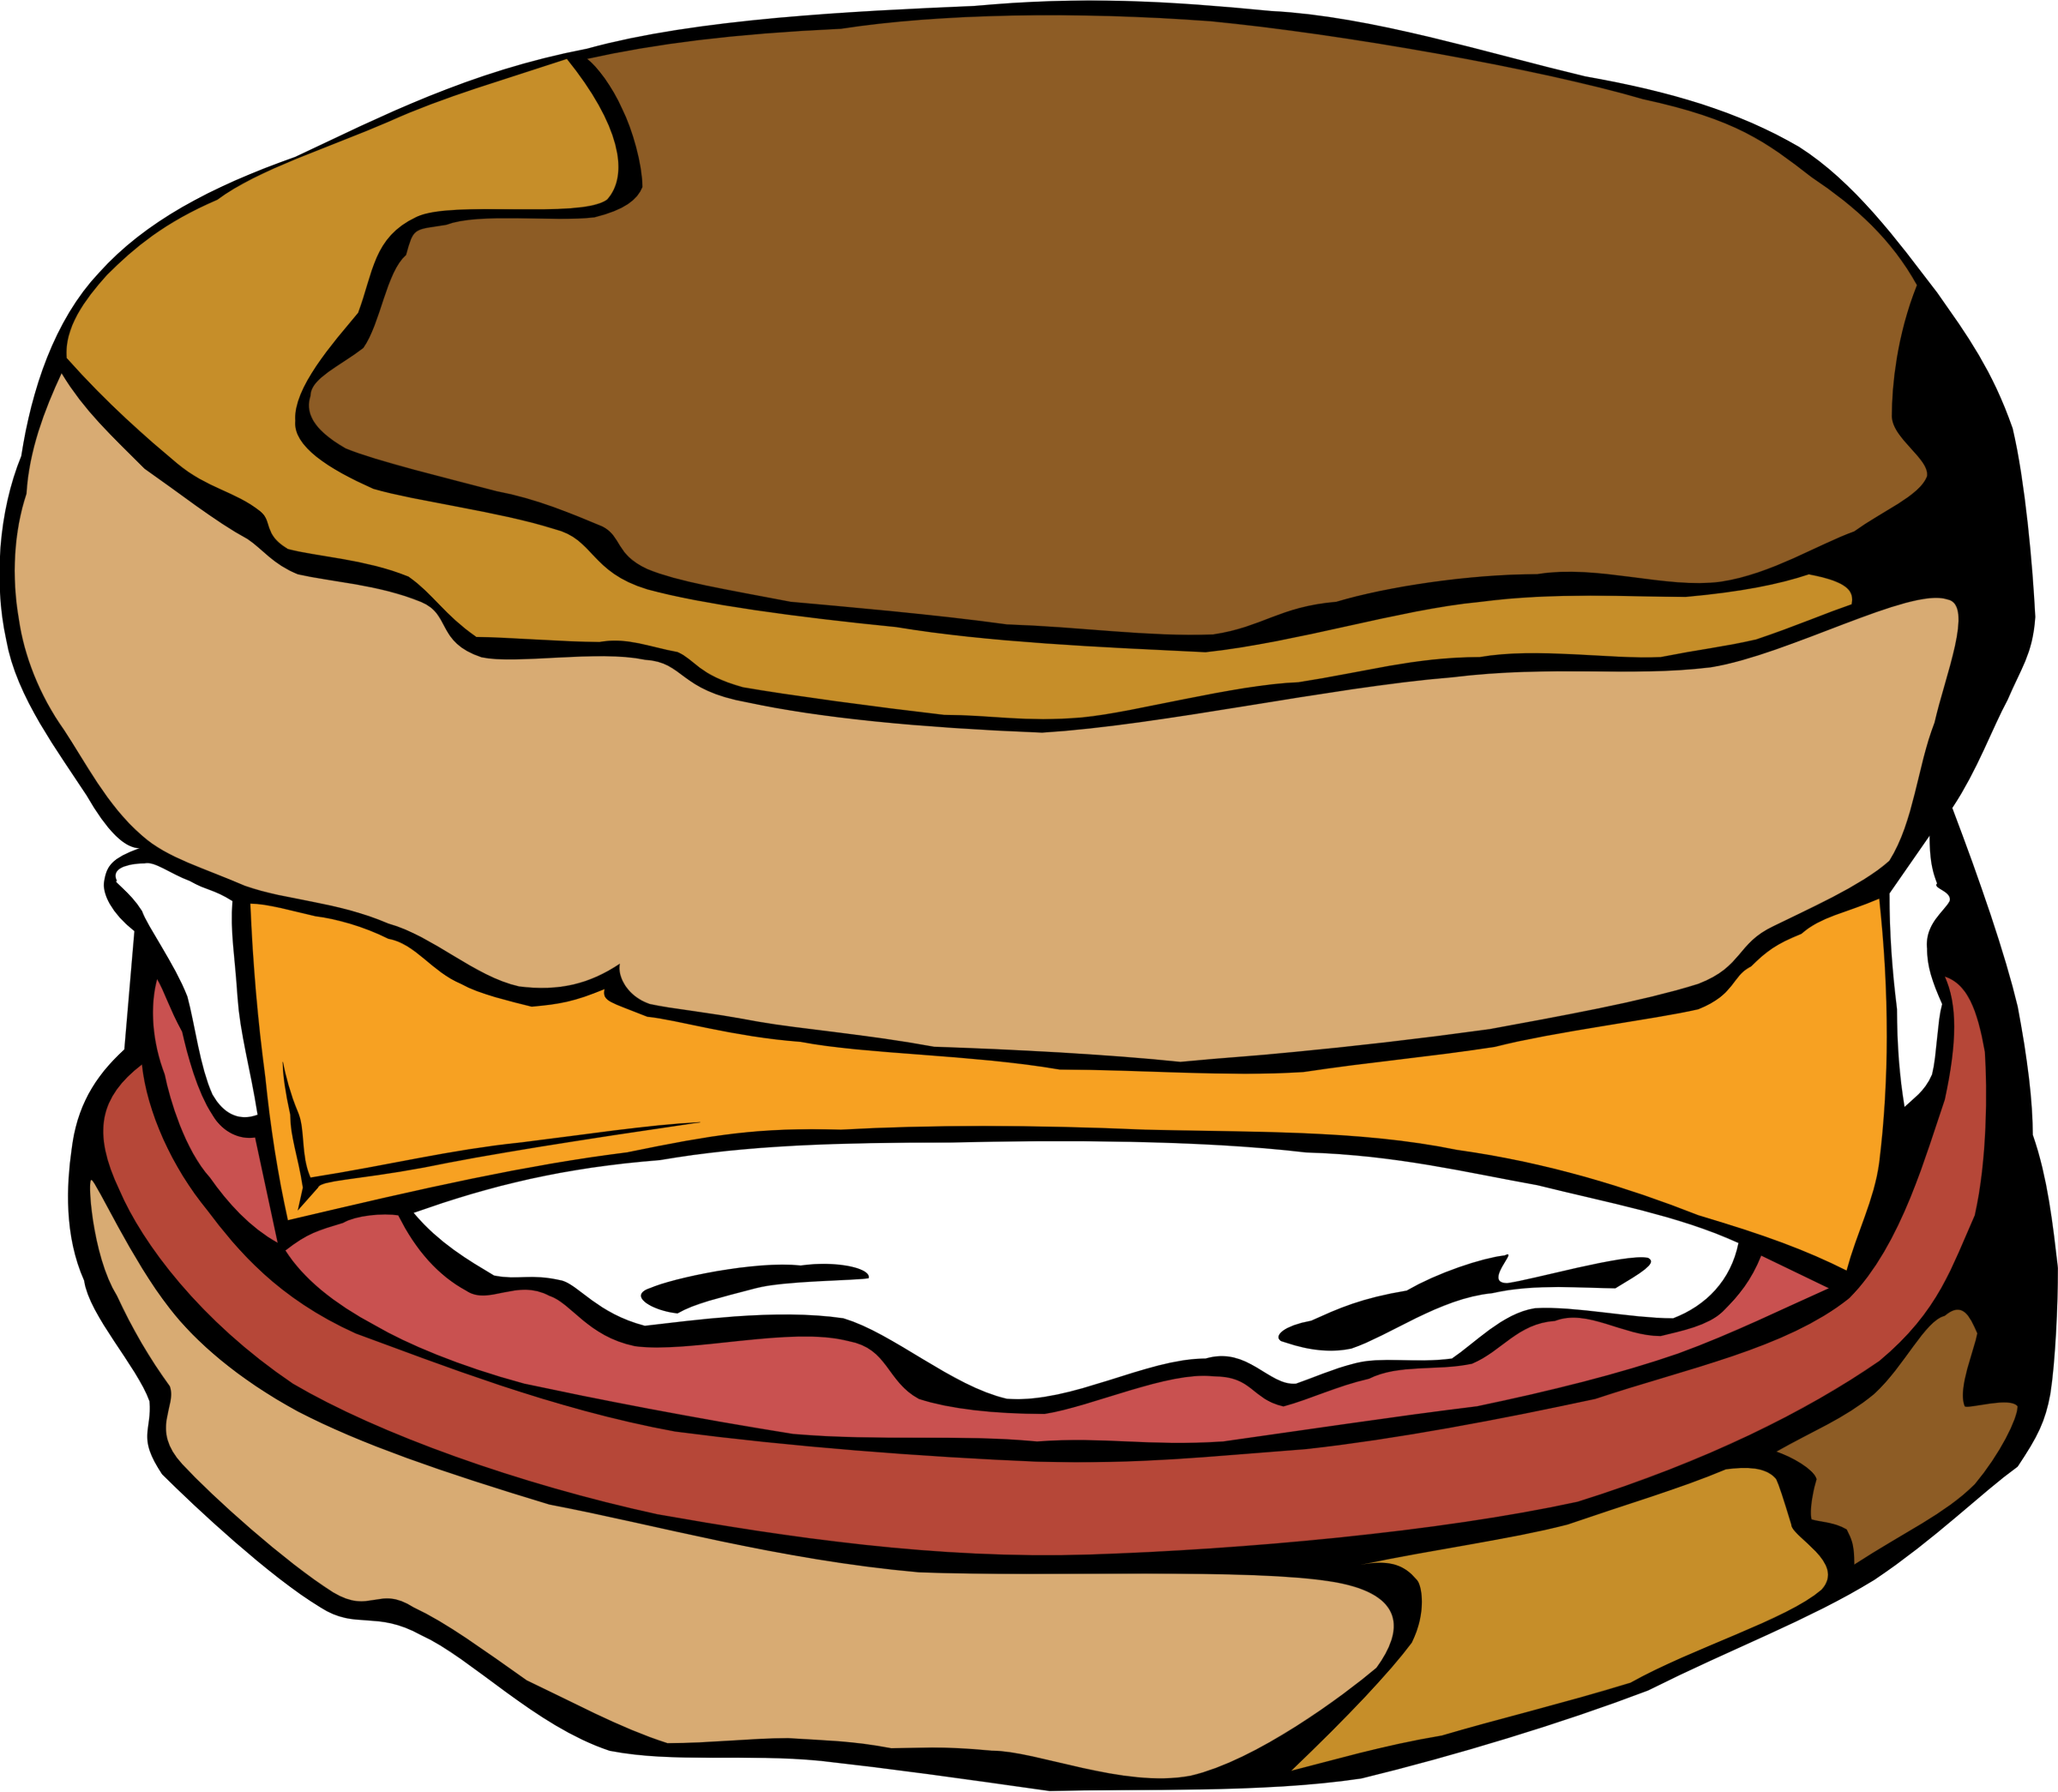 Muffins clipart 5 orange. Fast food breakfast egg